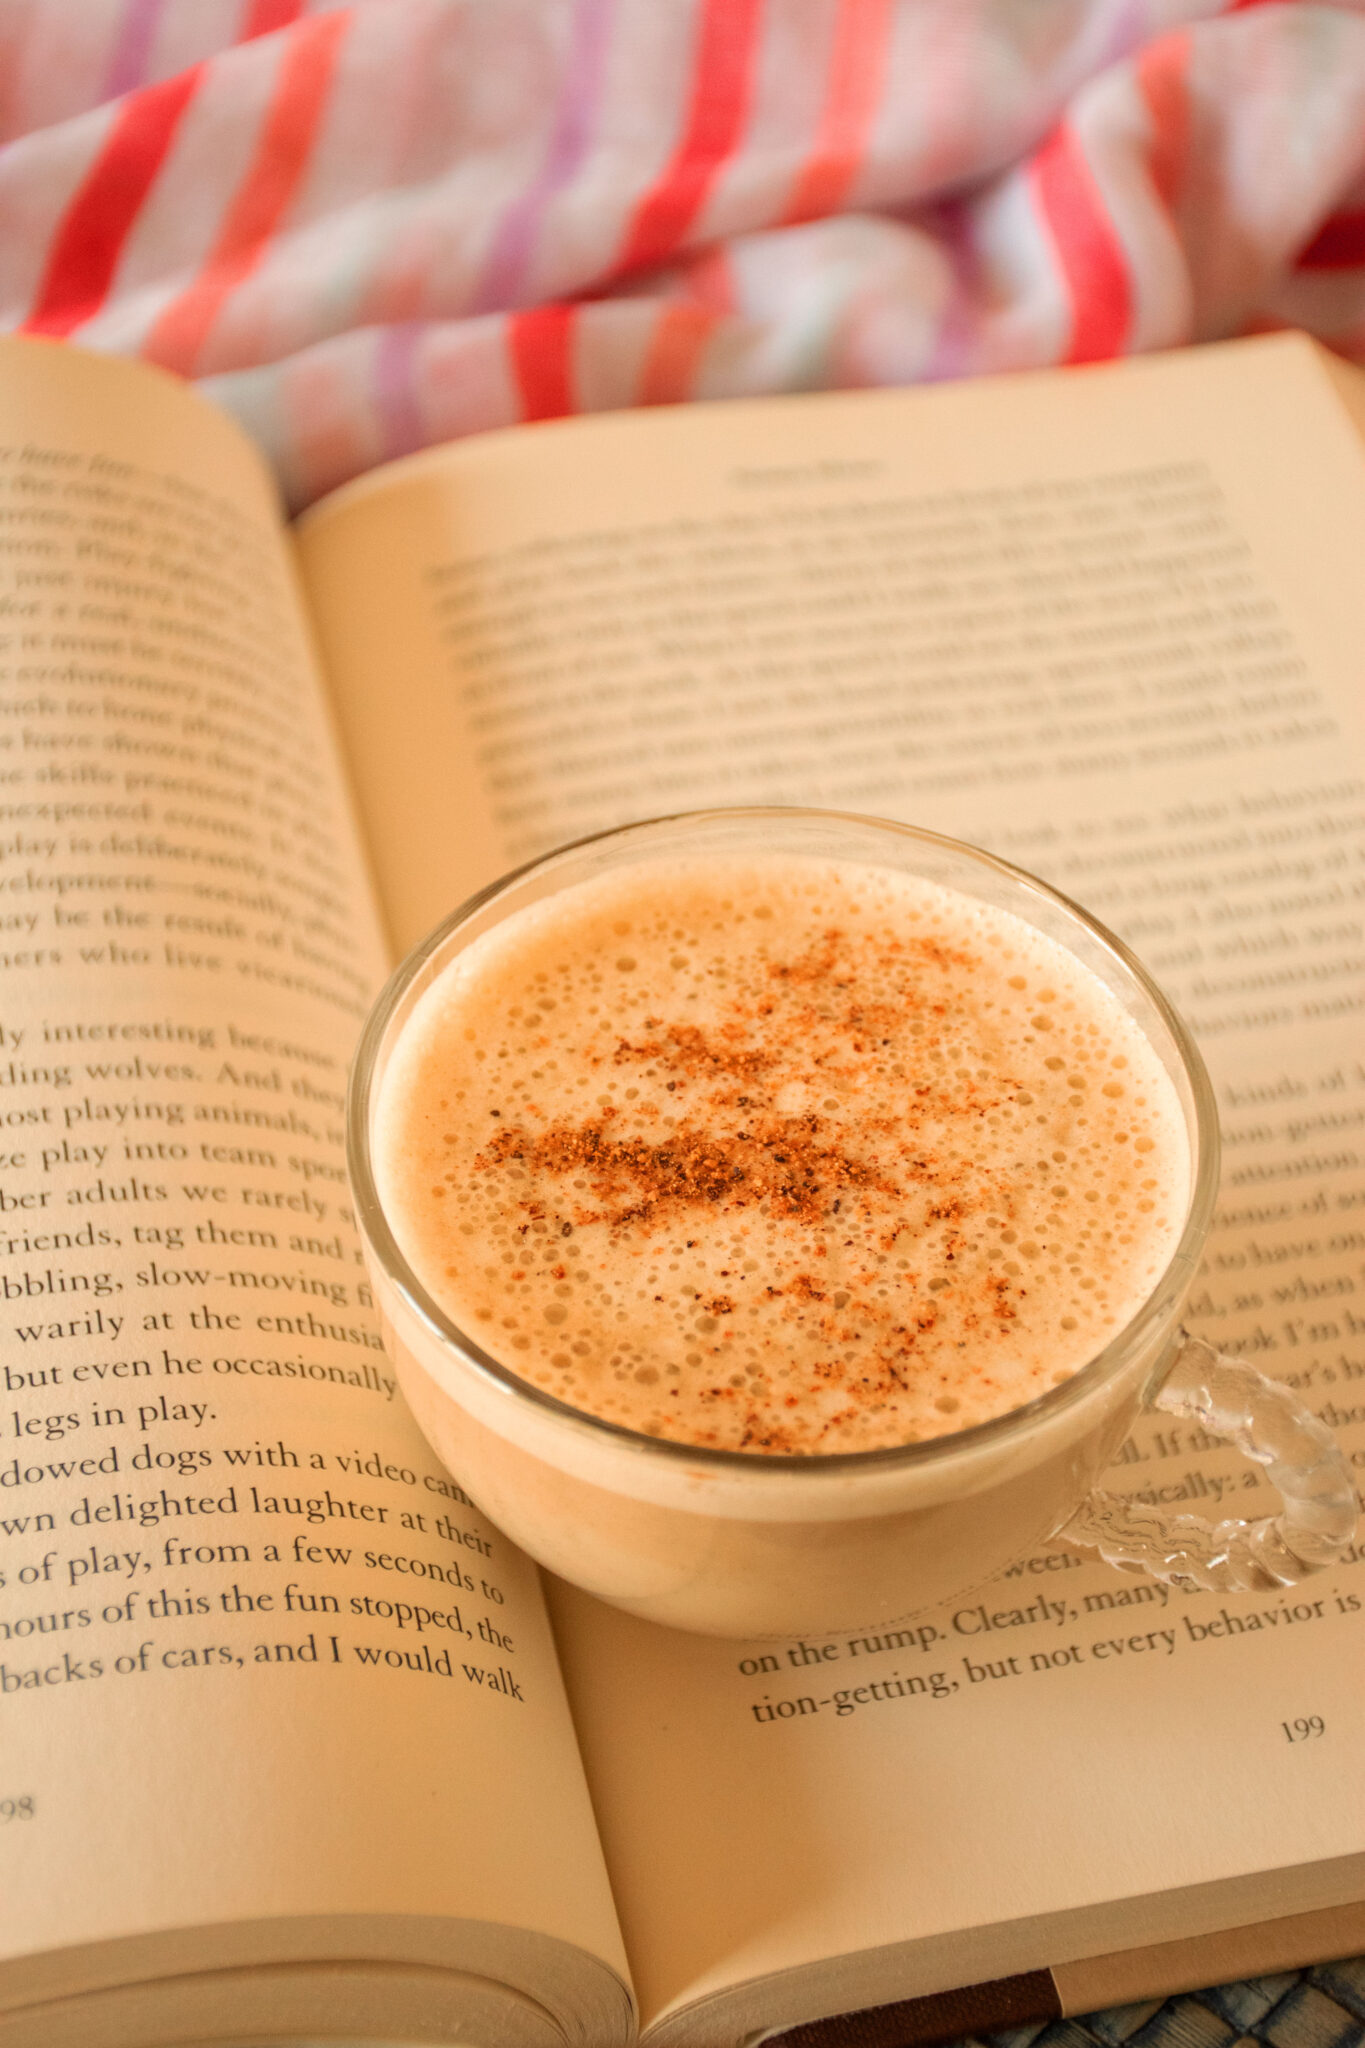 Small glass cup of latte sitting on an open book.